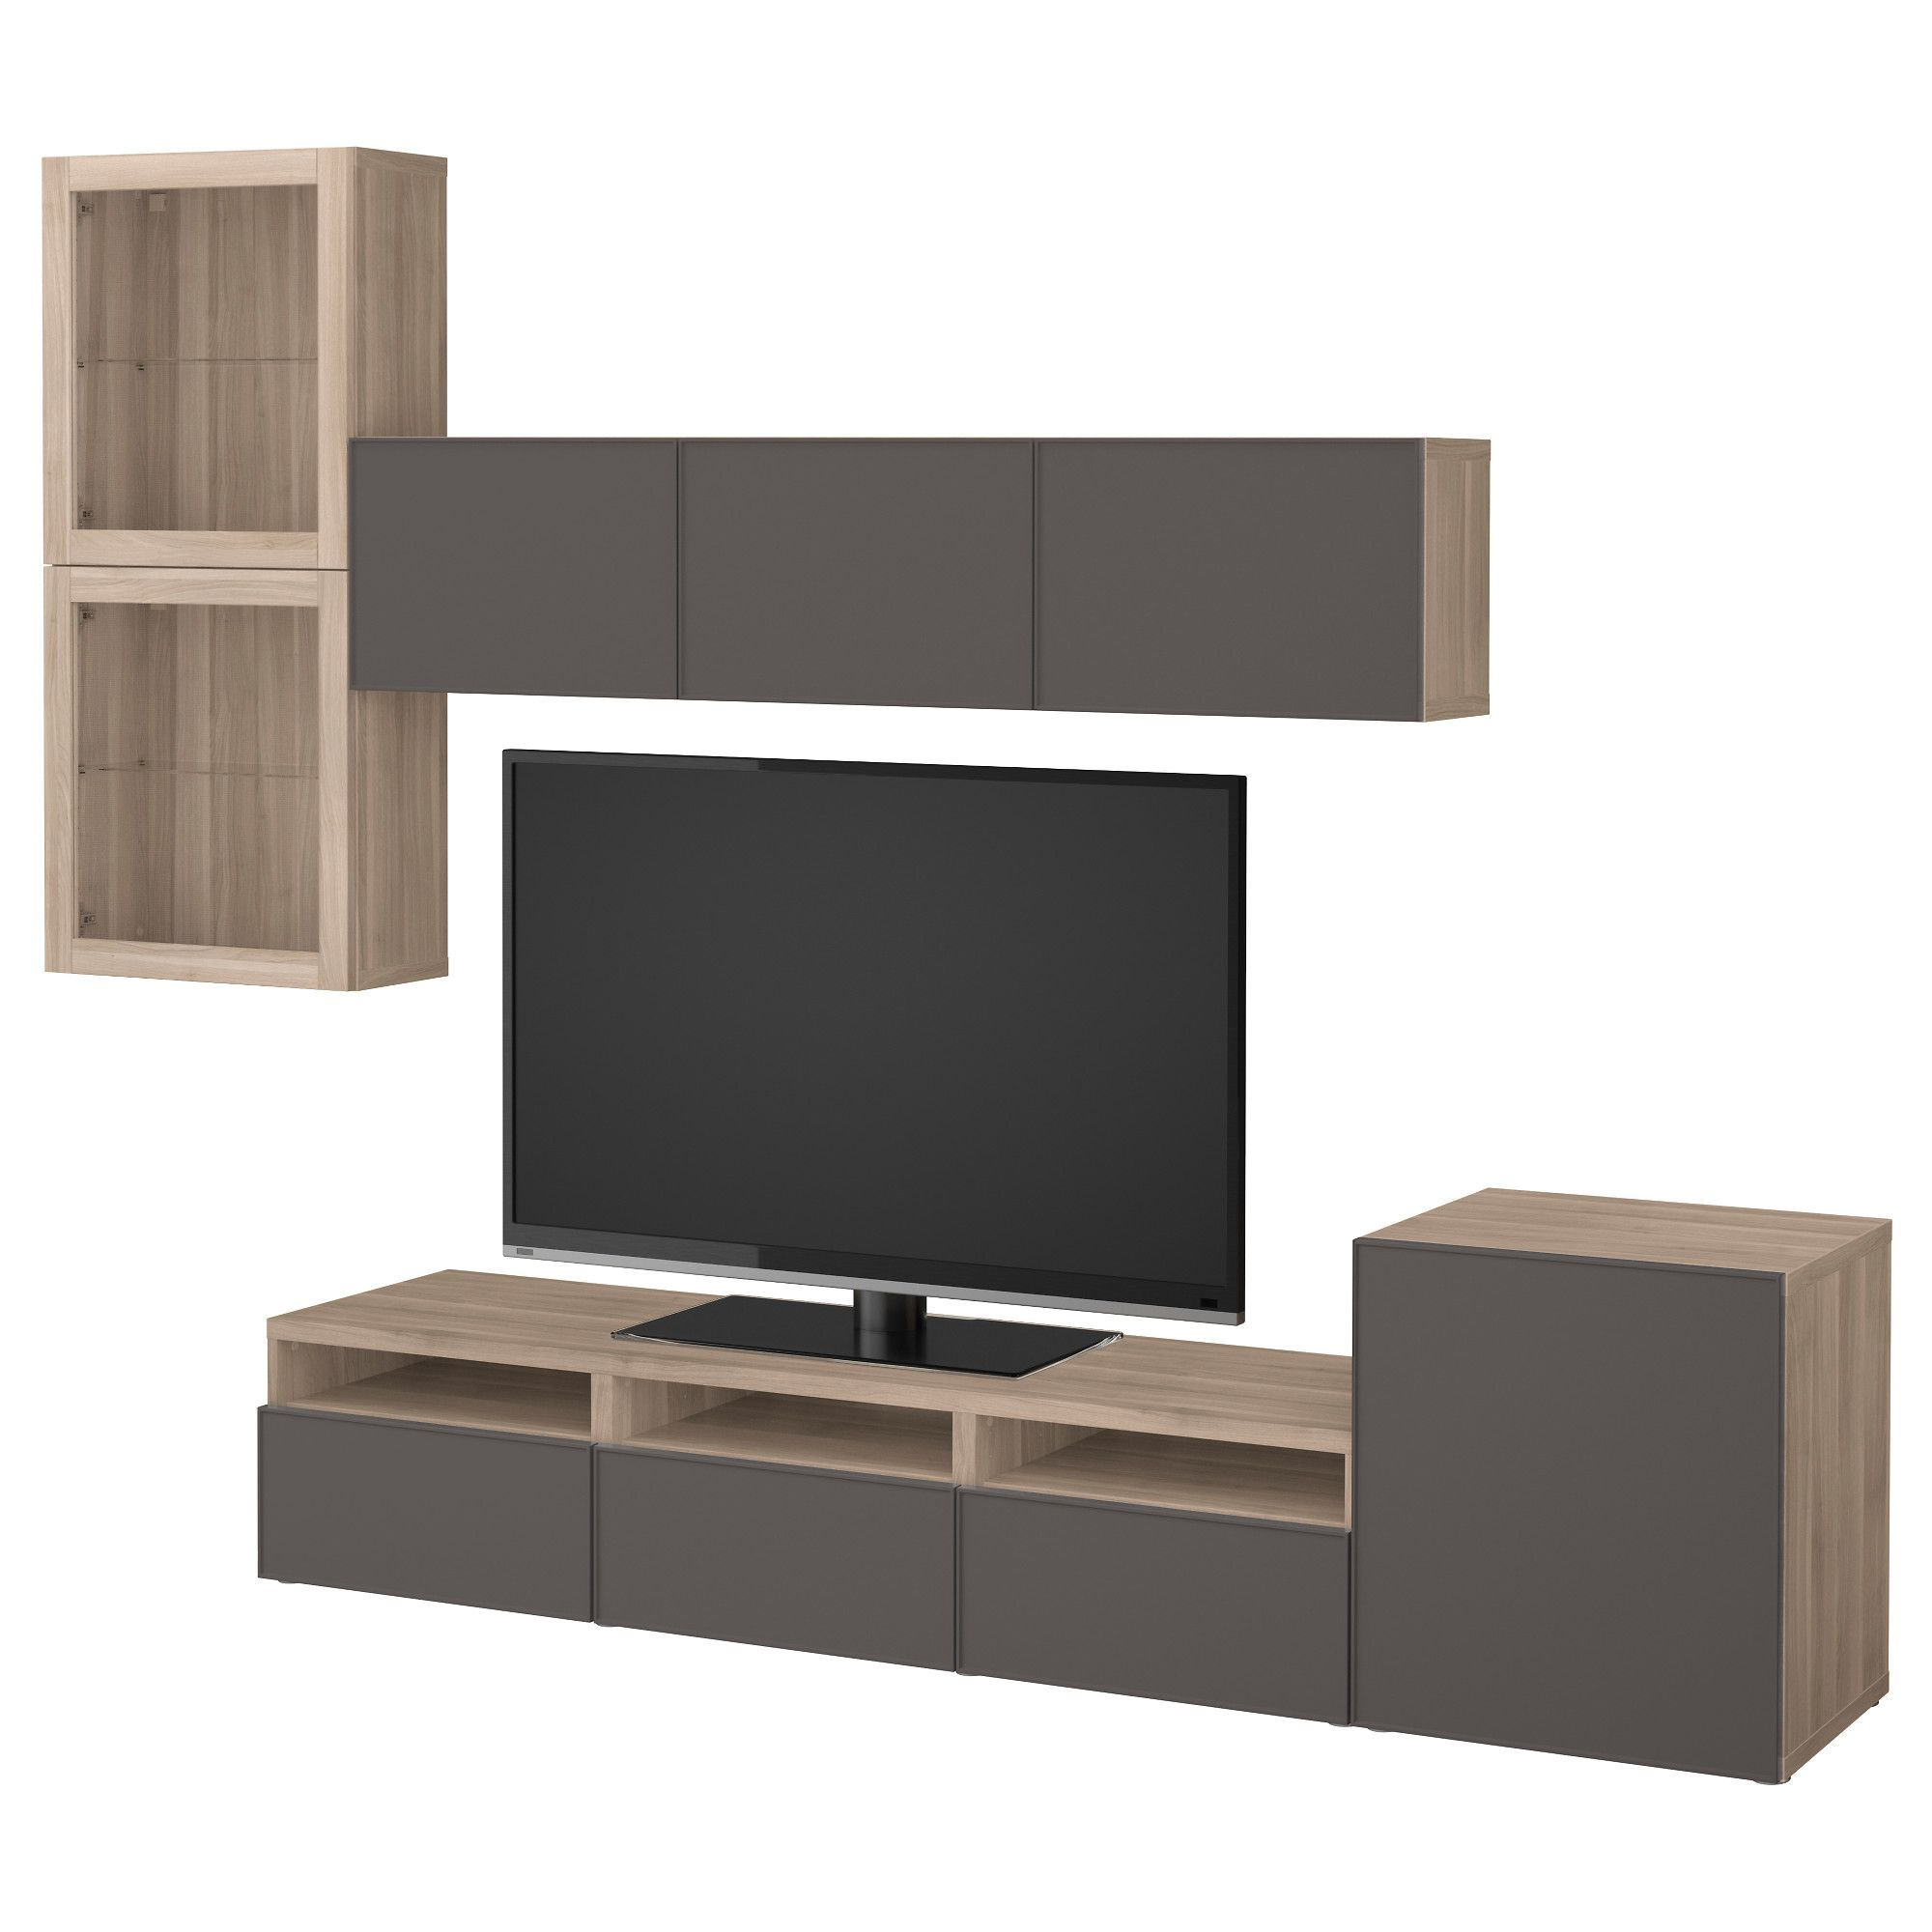 Tv Wand Glas BestÅ Tv Storage Combination Glass Doors Walnut Effect Light Gray